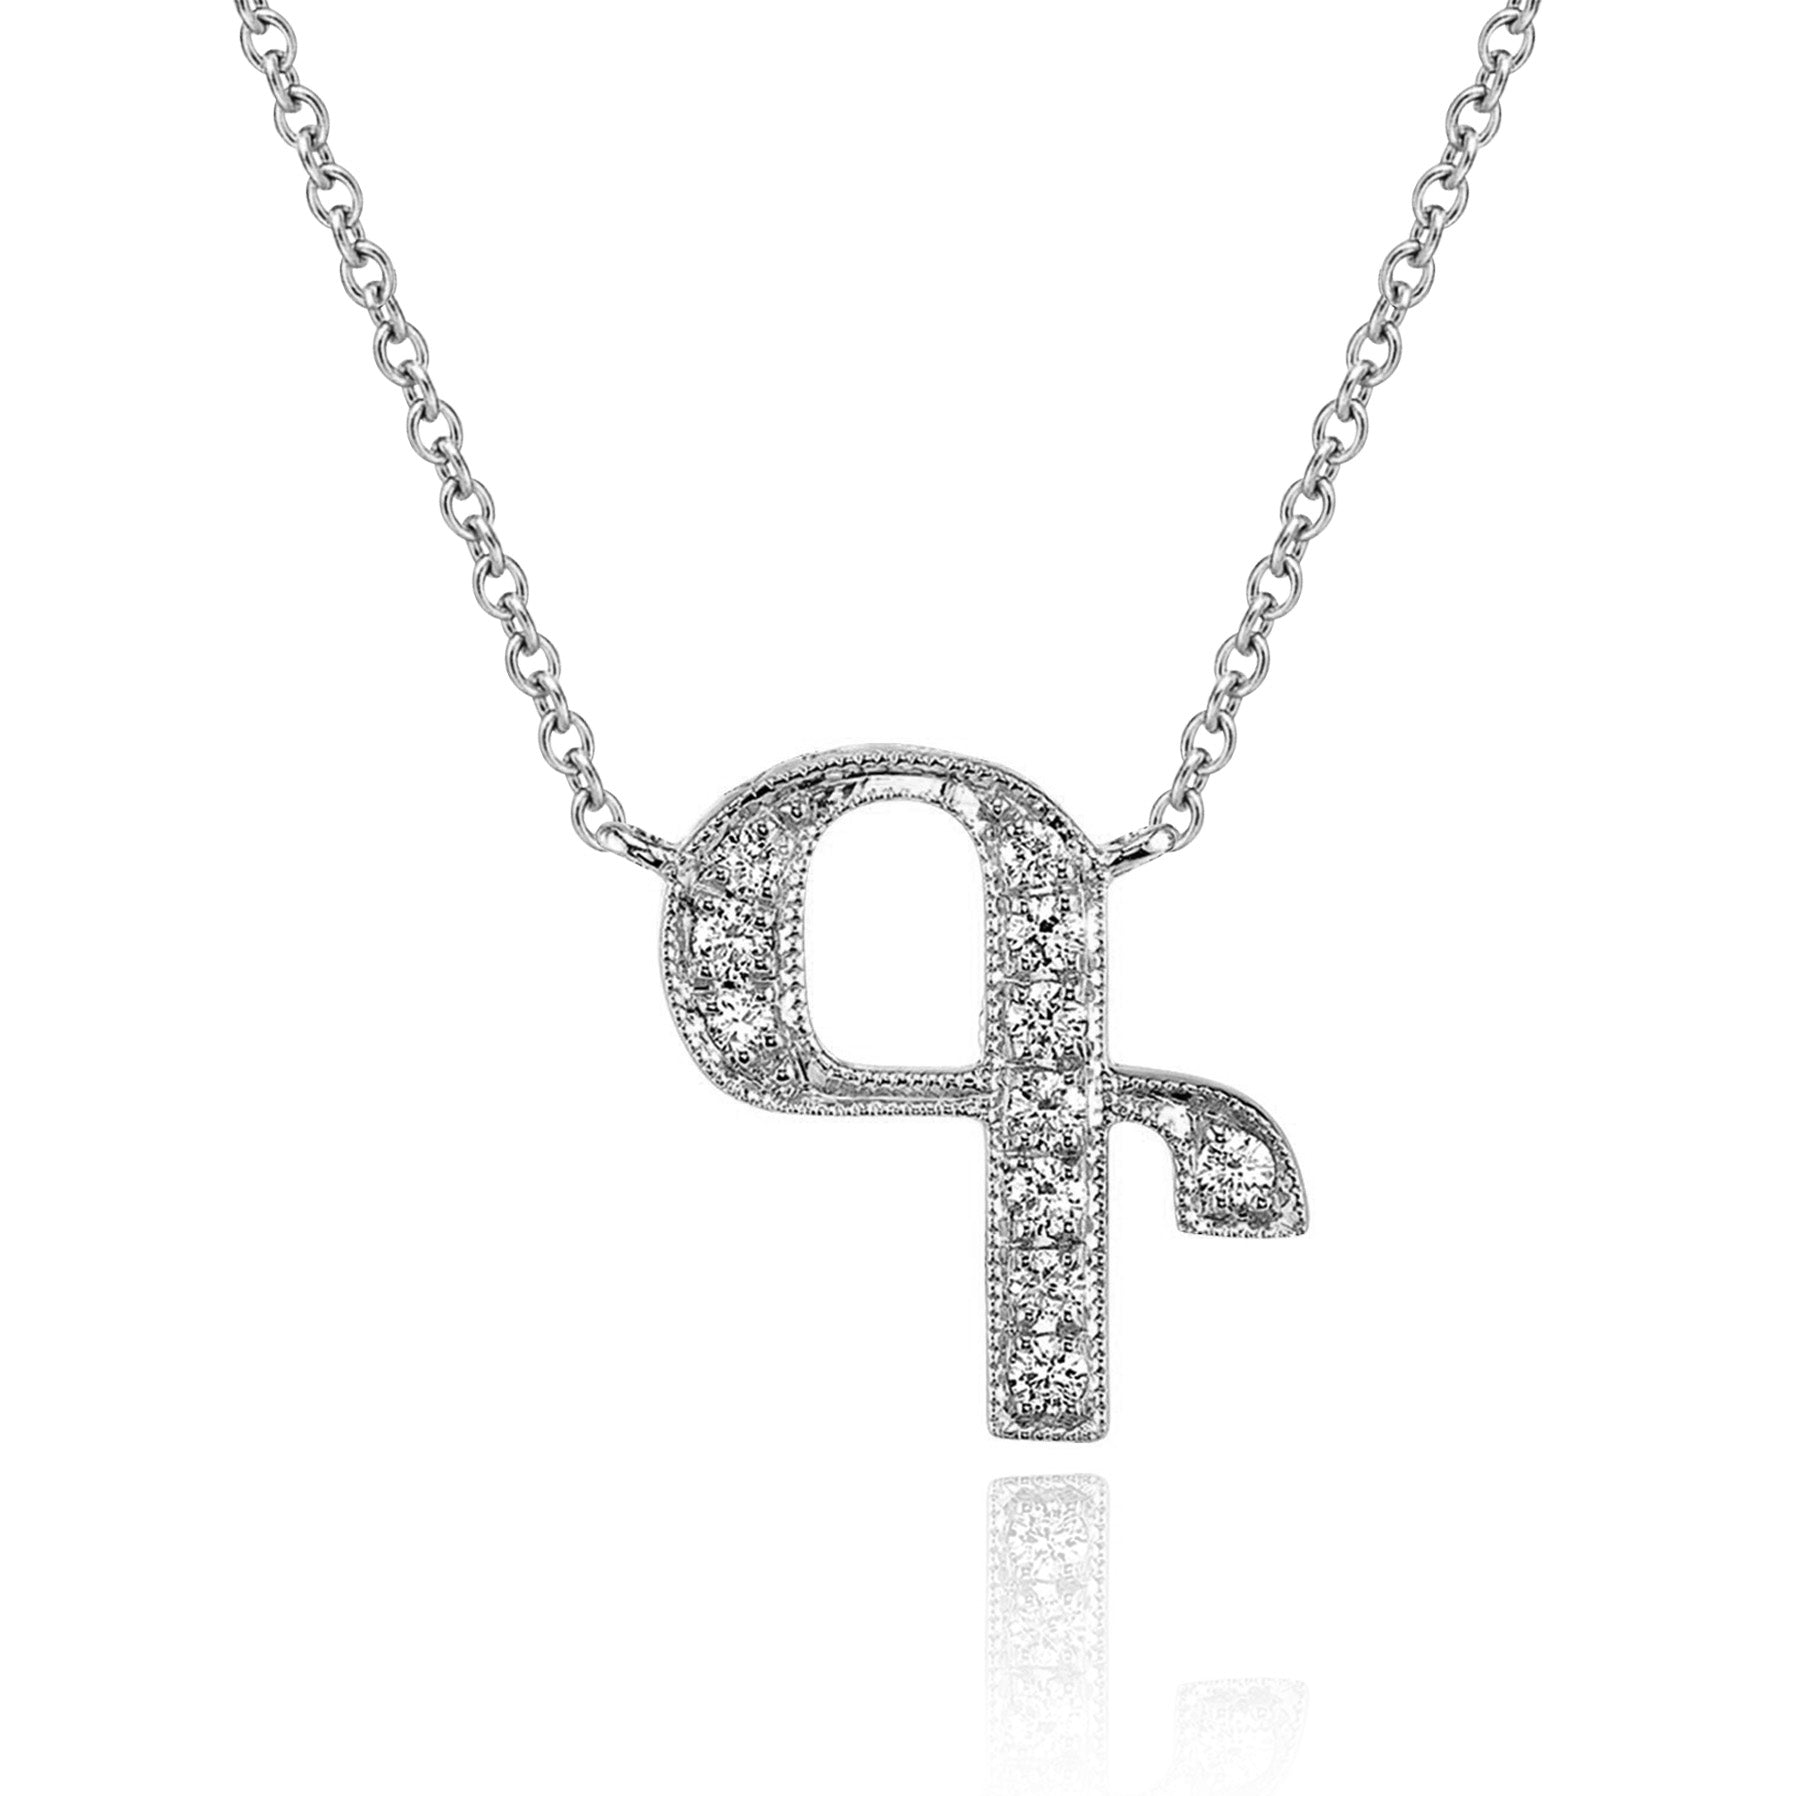 14K WHITE GOLD ARMENIAN INITIAL DIAMOND NECKLACE